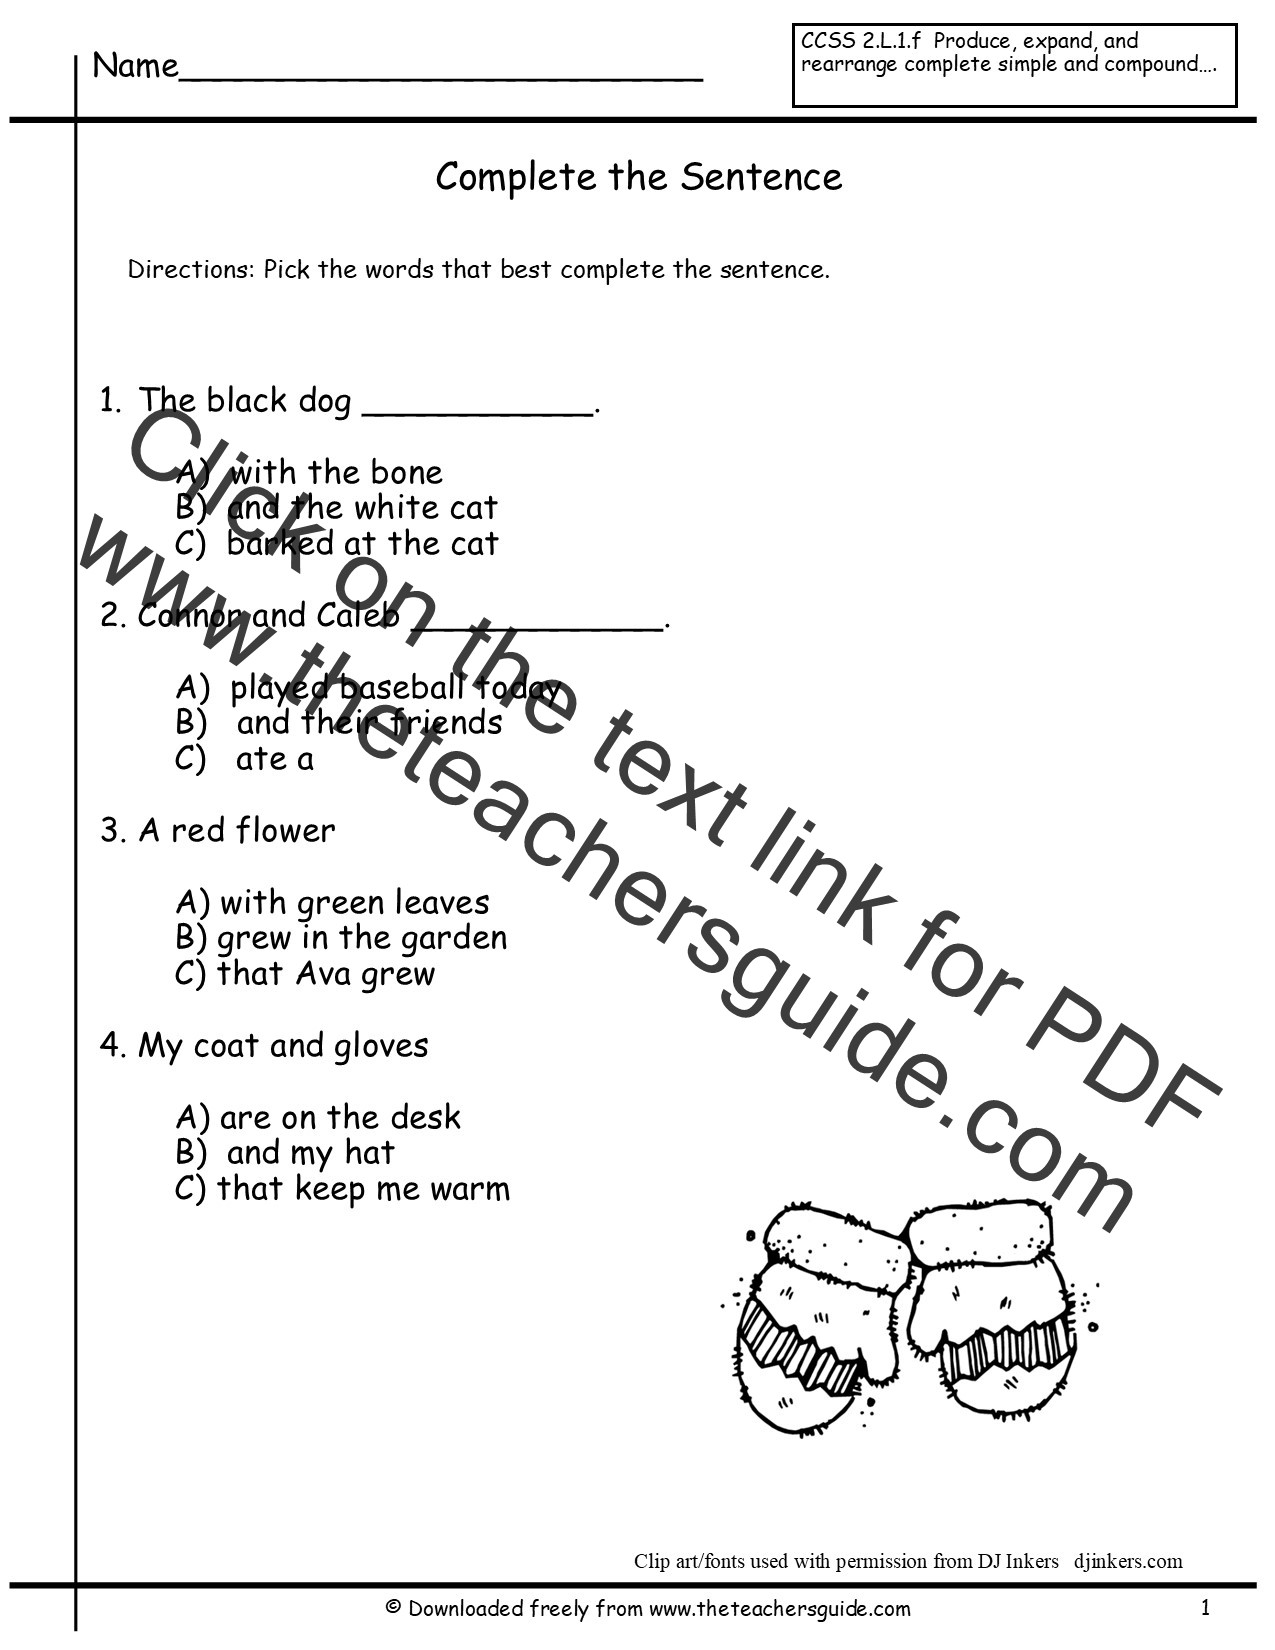 Complete Sentences Worksheets 3rd Grade 1st Grade Sentence Correction Worksheets